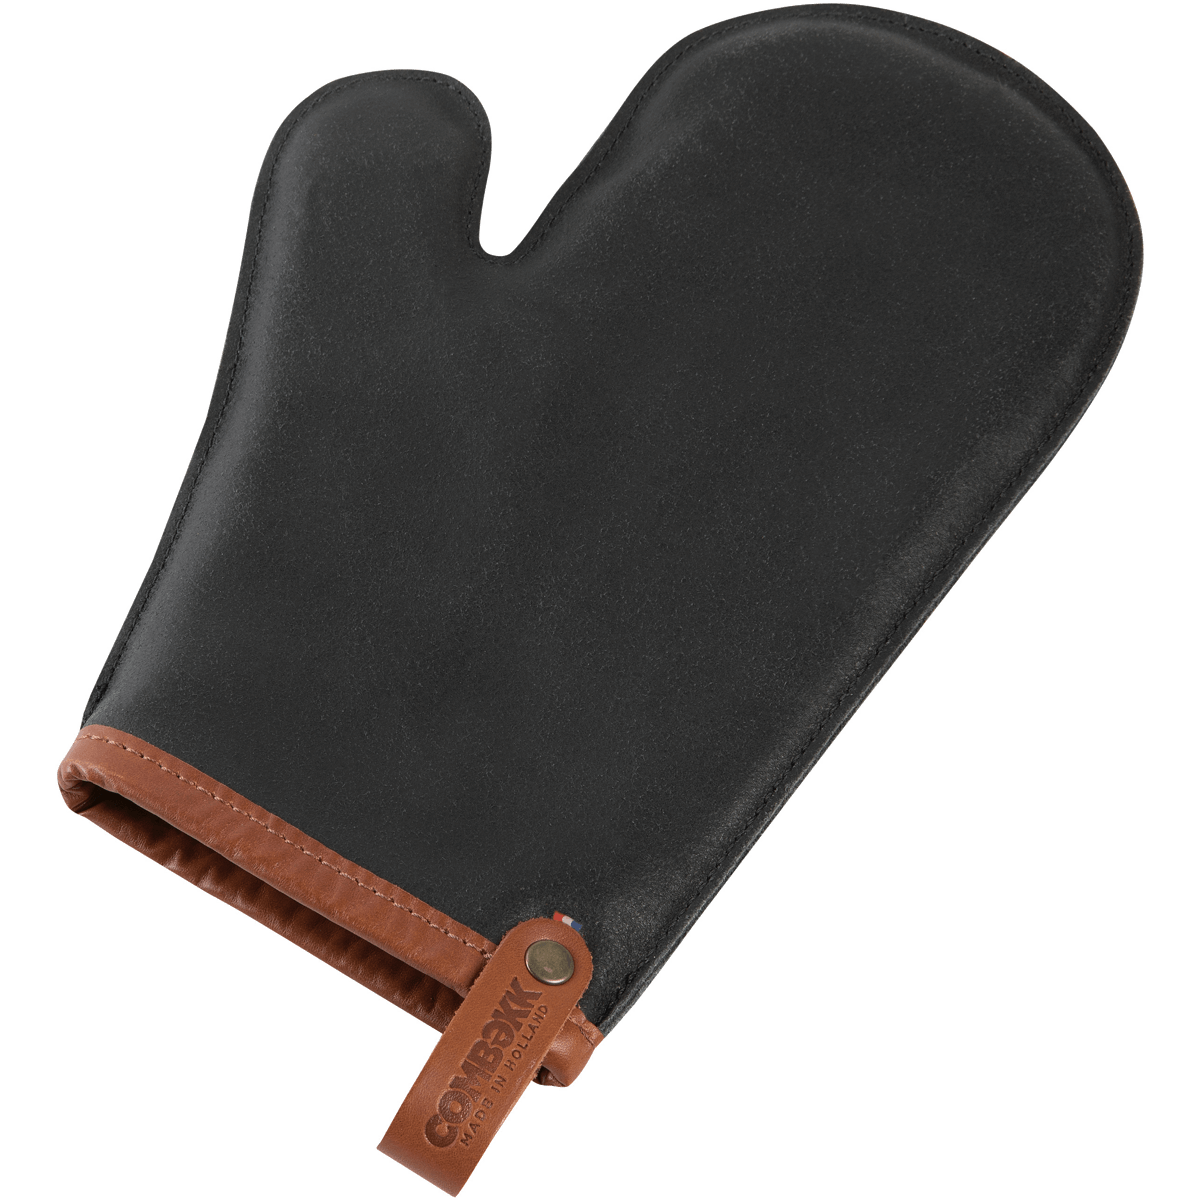 Dutch Oven Glove Black